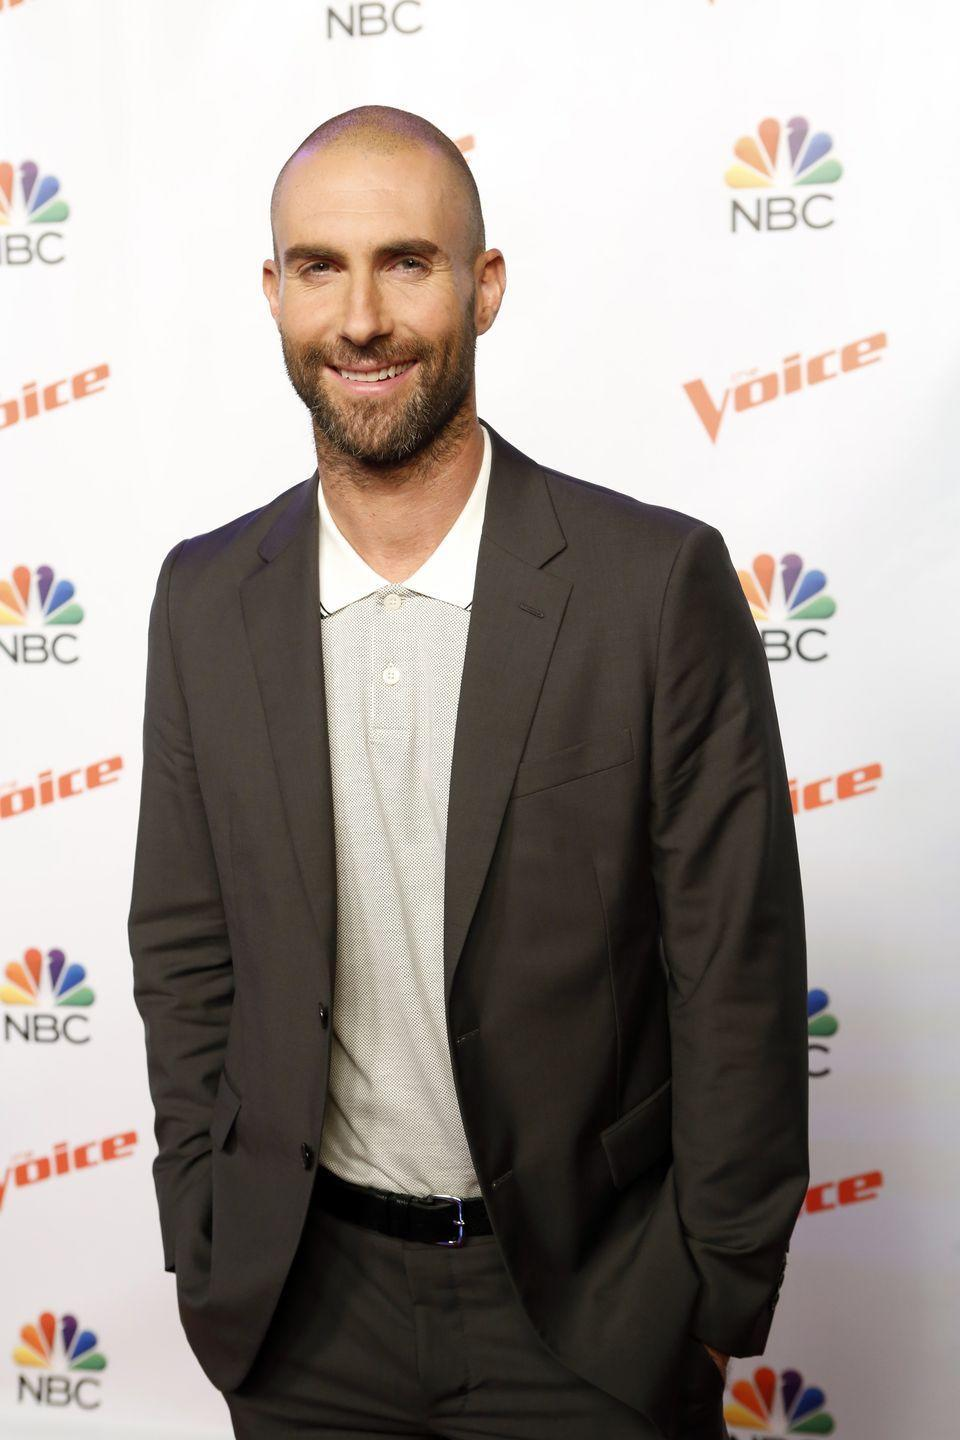 <p><strong>Shaved</strong></p><p>Which is why it didn't surprise fans when the Maroon 5 singer showed up to his TV show with a shaved head. That didn't stop him from his antics with Blake Shelton though...</p>